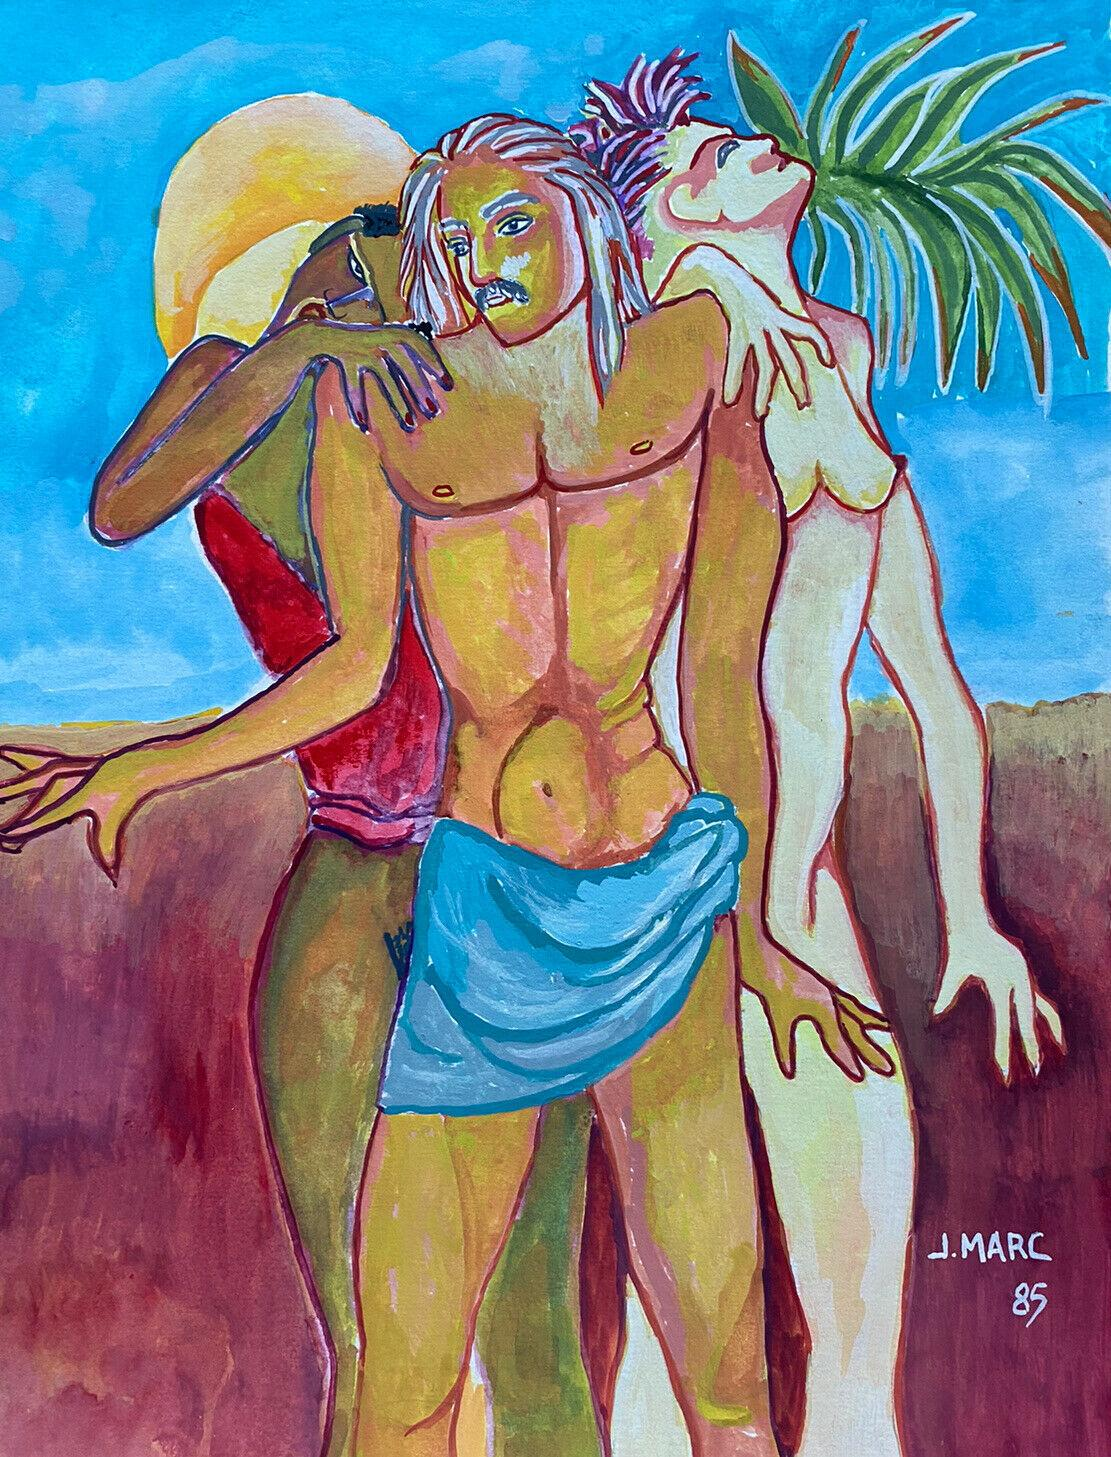 COLORFUL 20th CENTURY FRENCH MODERNIST PAINTING - NUDE FIGURES IN DESERT